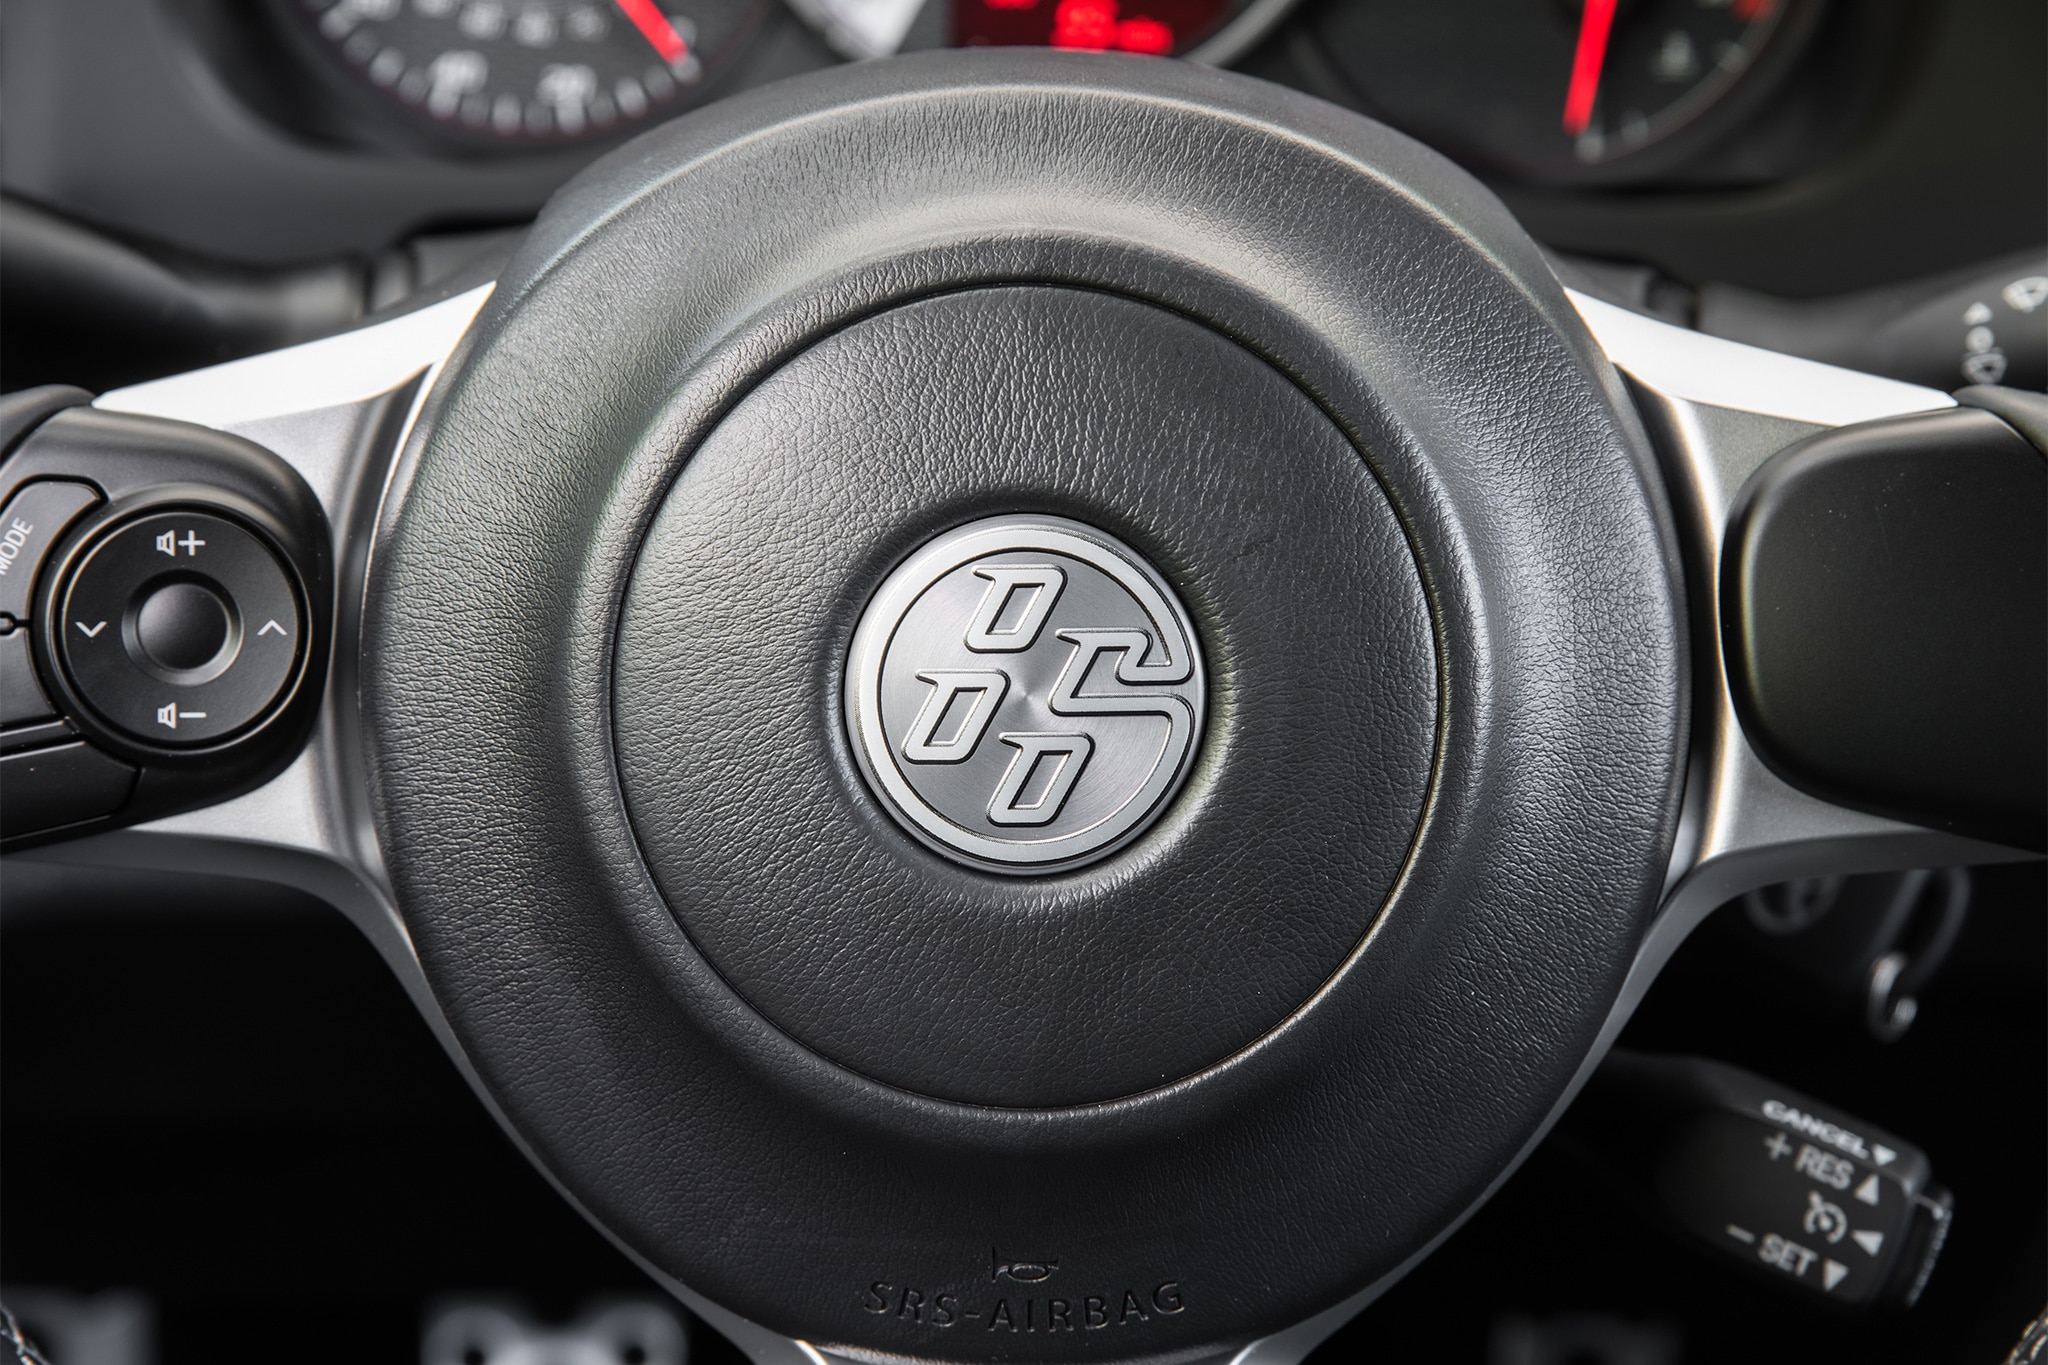 2017 Toyota 86 interior badge